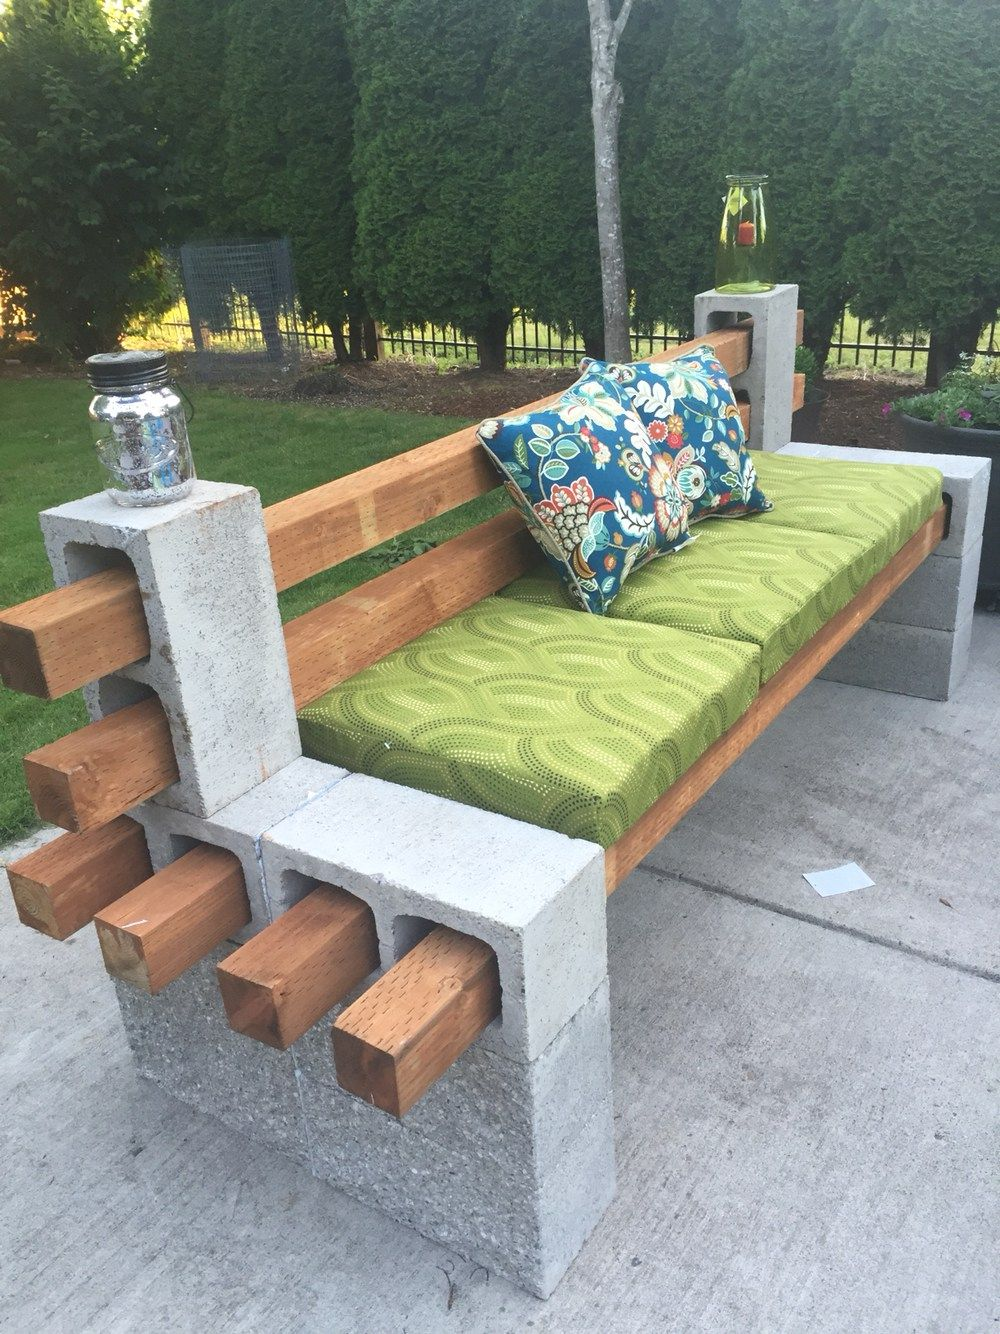 Doable Diy Projects Men Cool